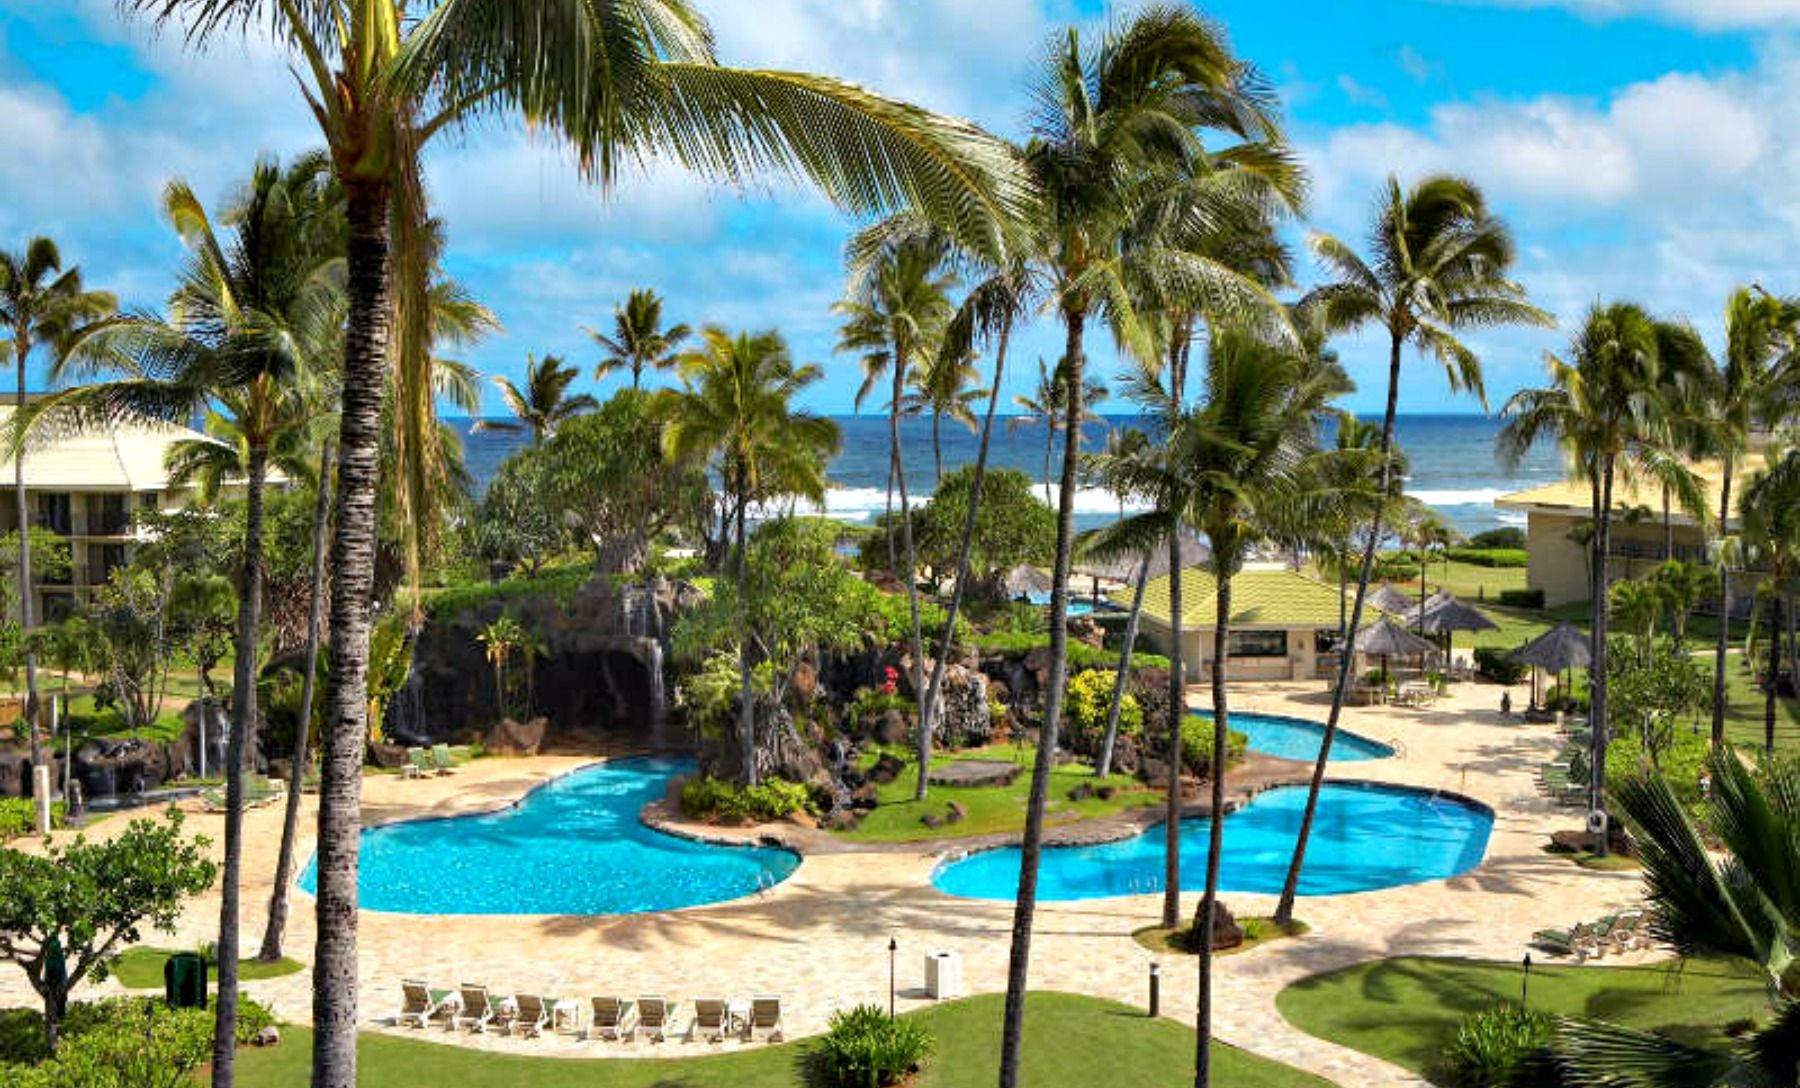 All Inclusive Vacation at THE KAUAI BEACH RESORT 7 days